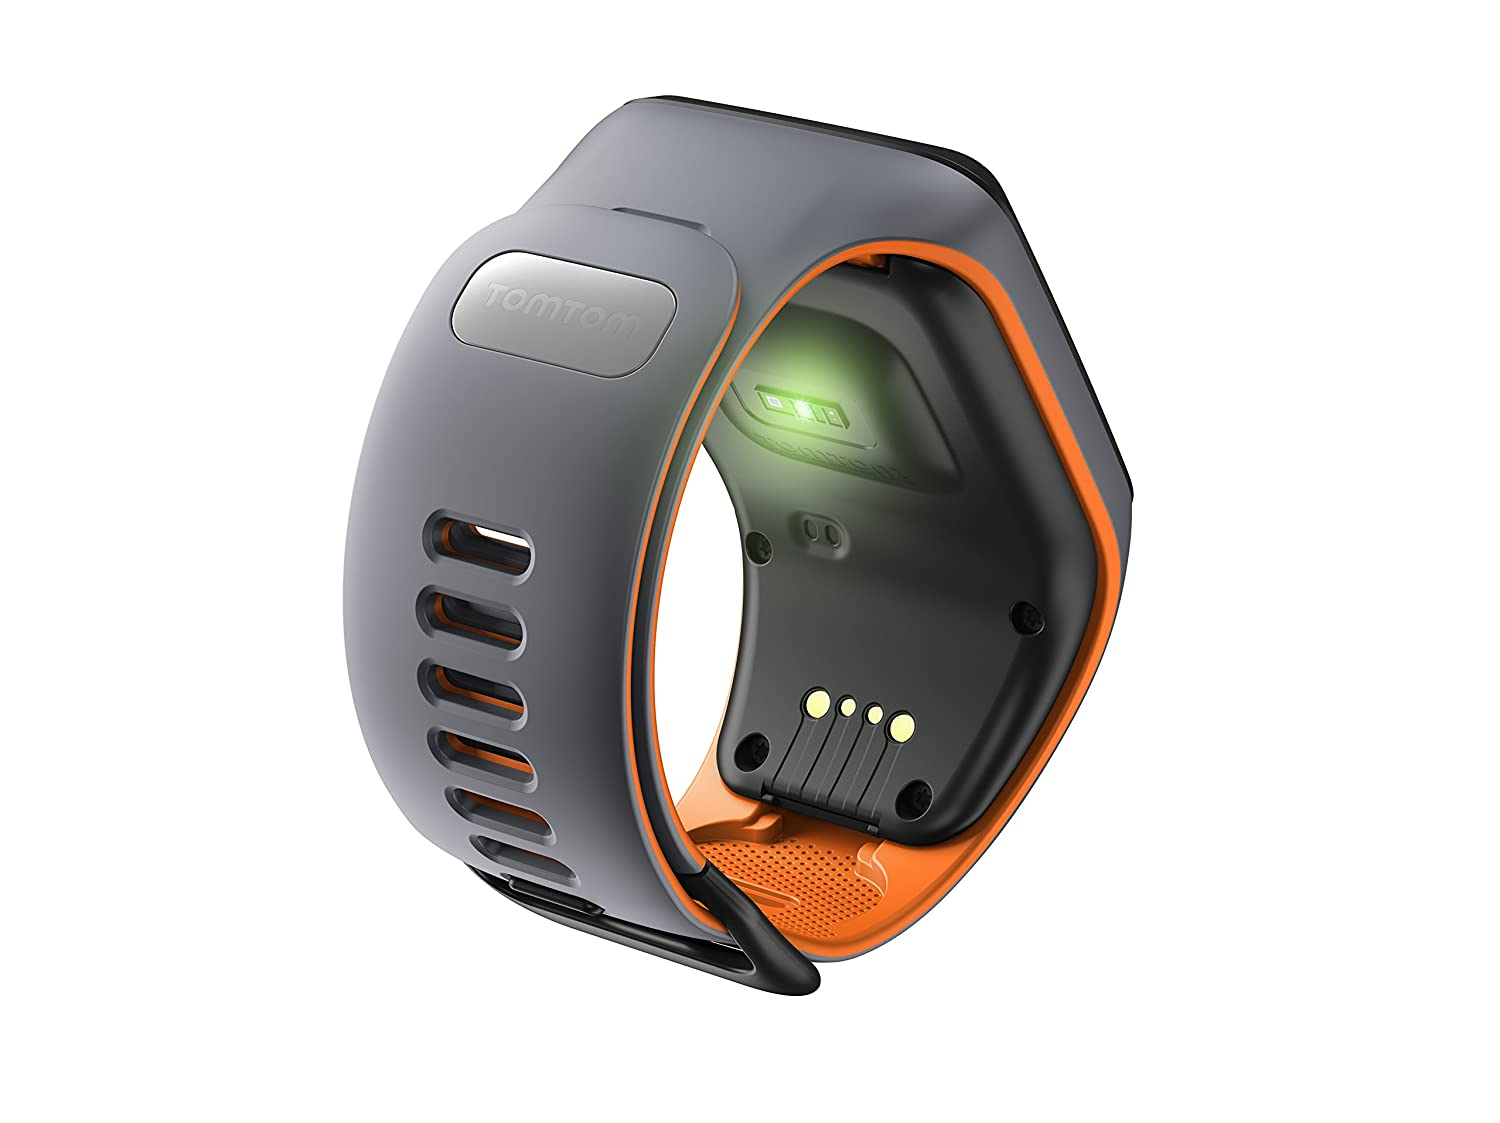 TomTom - Bracelet pour Montre TomTom RUNNER 3, SPARK 3, RUNNER 2 & SPARK: Amazon.fr: High-tech